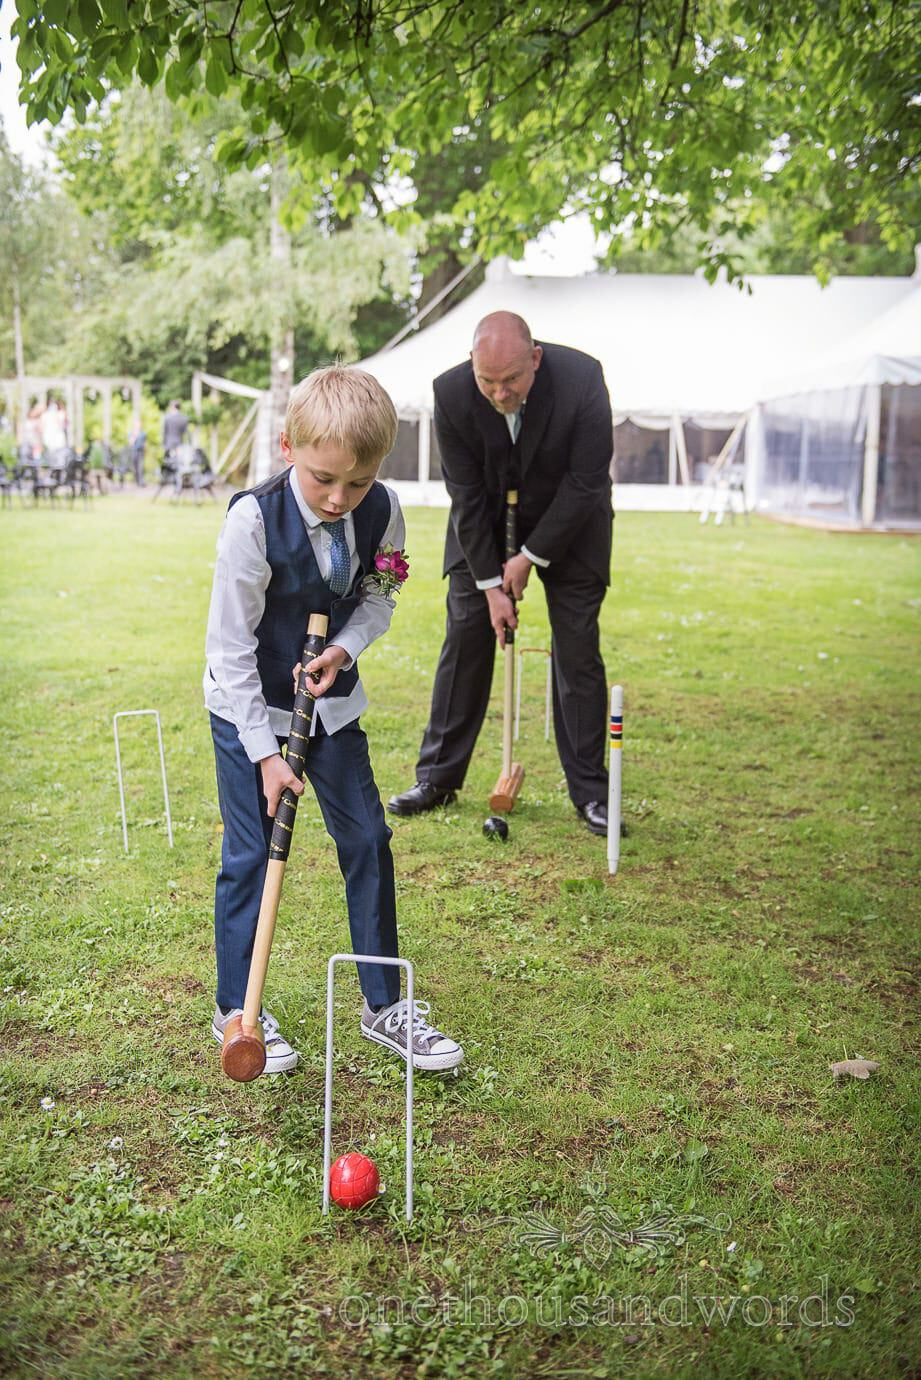 Child wedding guest shows adult how to play croquet at The Old Vicarage Wedding lawn games